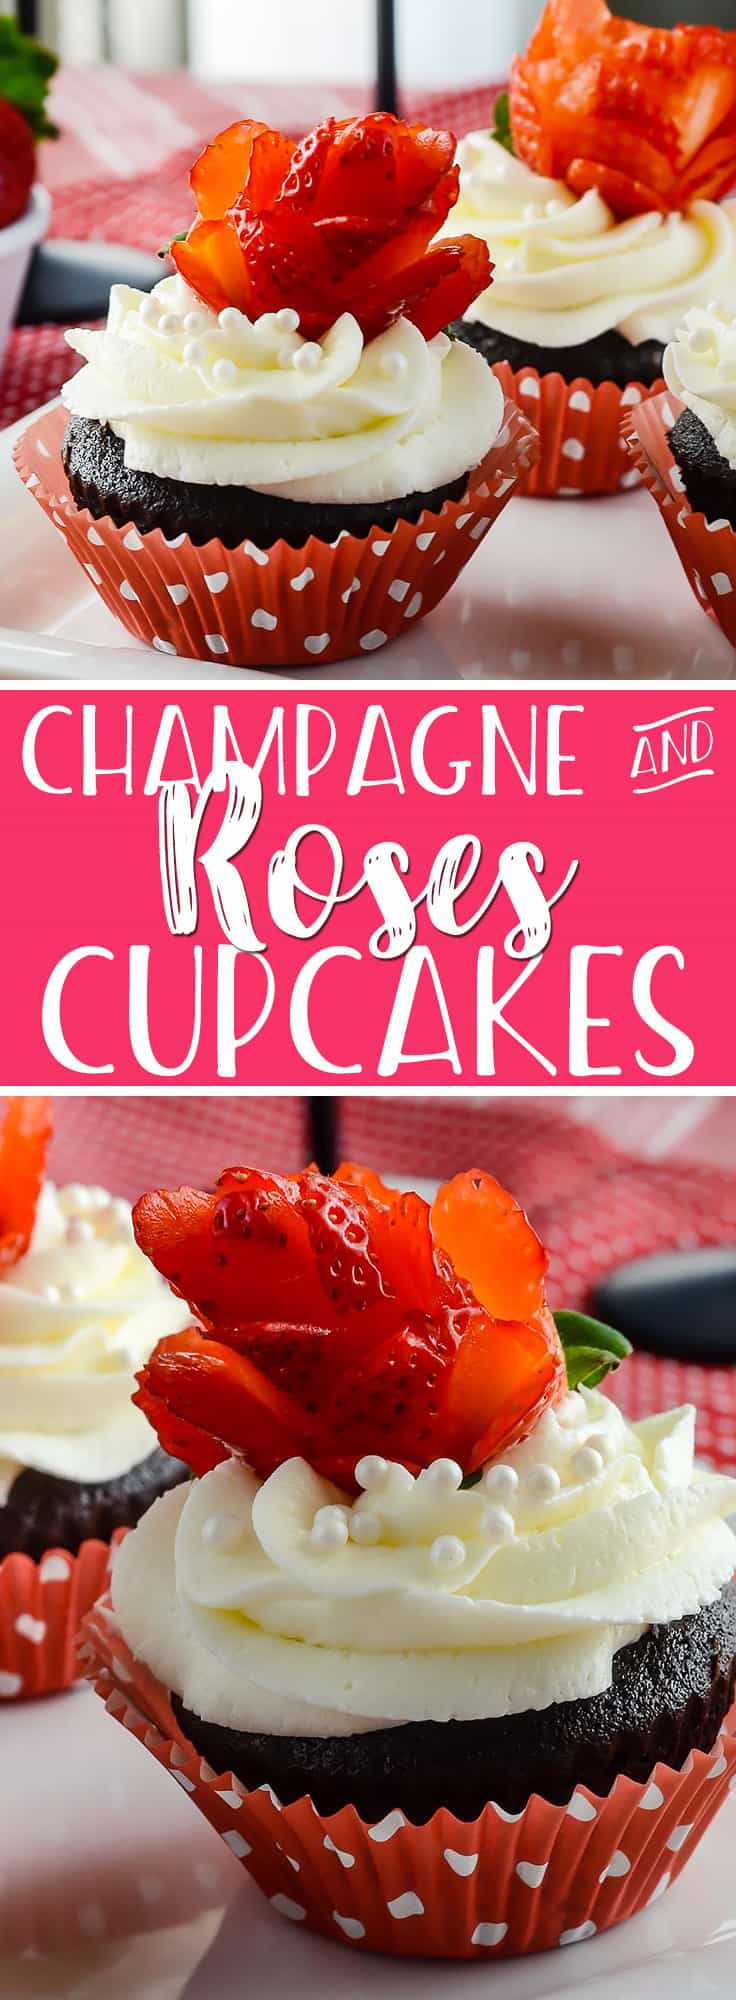 Valentine's Day wrapped up in a sweet dessert: dark chocolate rose cupcakes, strawberries, and bubbly are what make theseChampagne and Roses Cupcakes come to life!